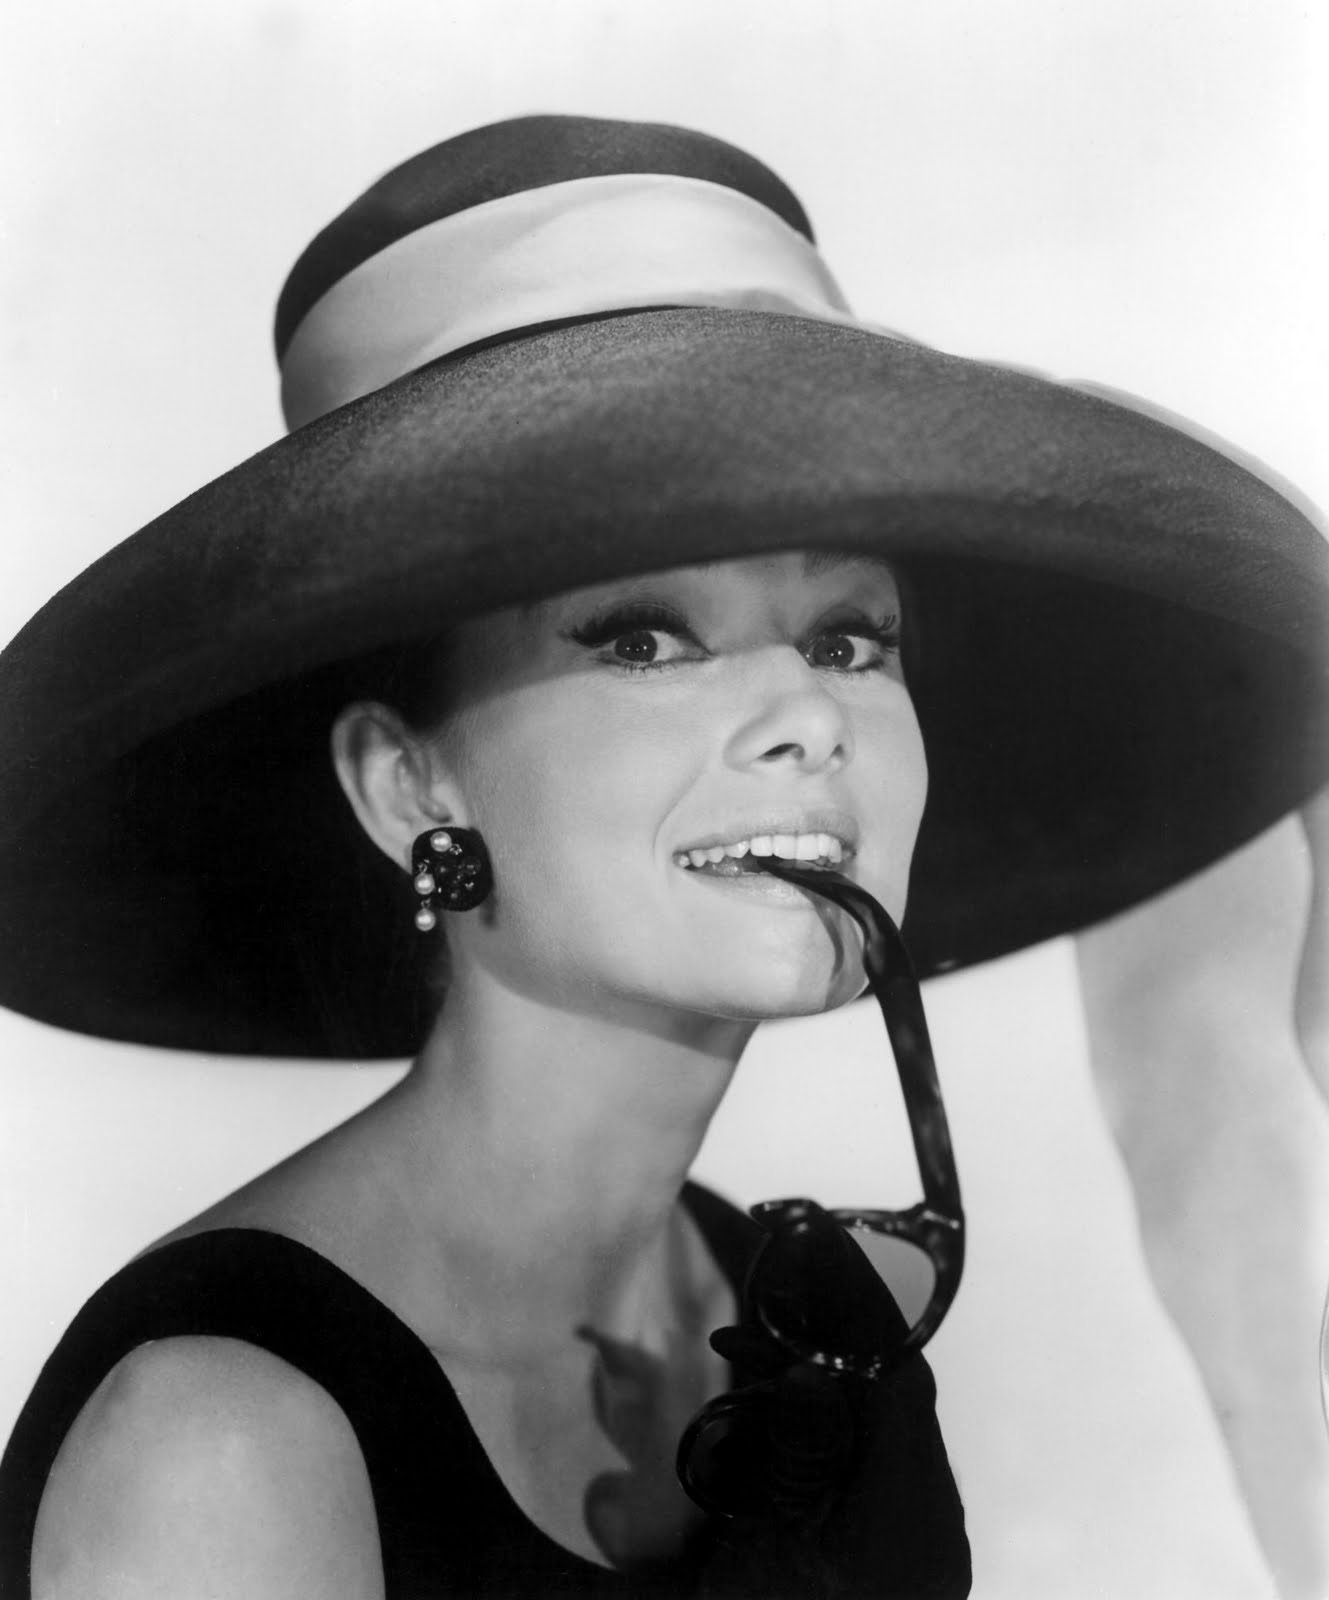 http://2.bp.blogspot.com/-A7Dm5ZQJRqU/TiB-xme7E7I/AAAAAAAAAHo/XgRIzQq1r-8/s1600/Audrey+Hepburn+as+Holly+Golightly+in+Breakfast+at+Tiffany%2527s.jpg